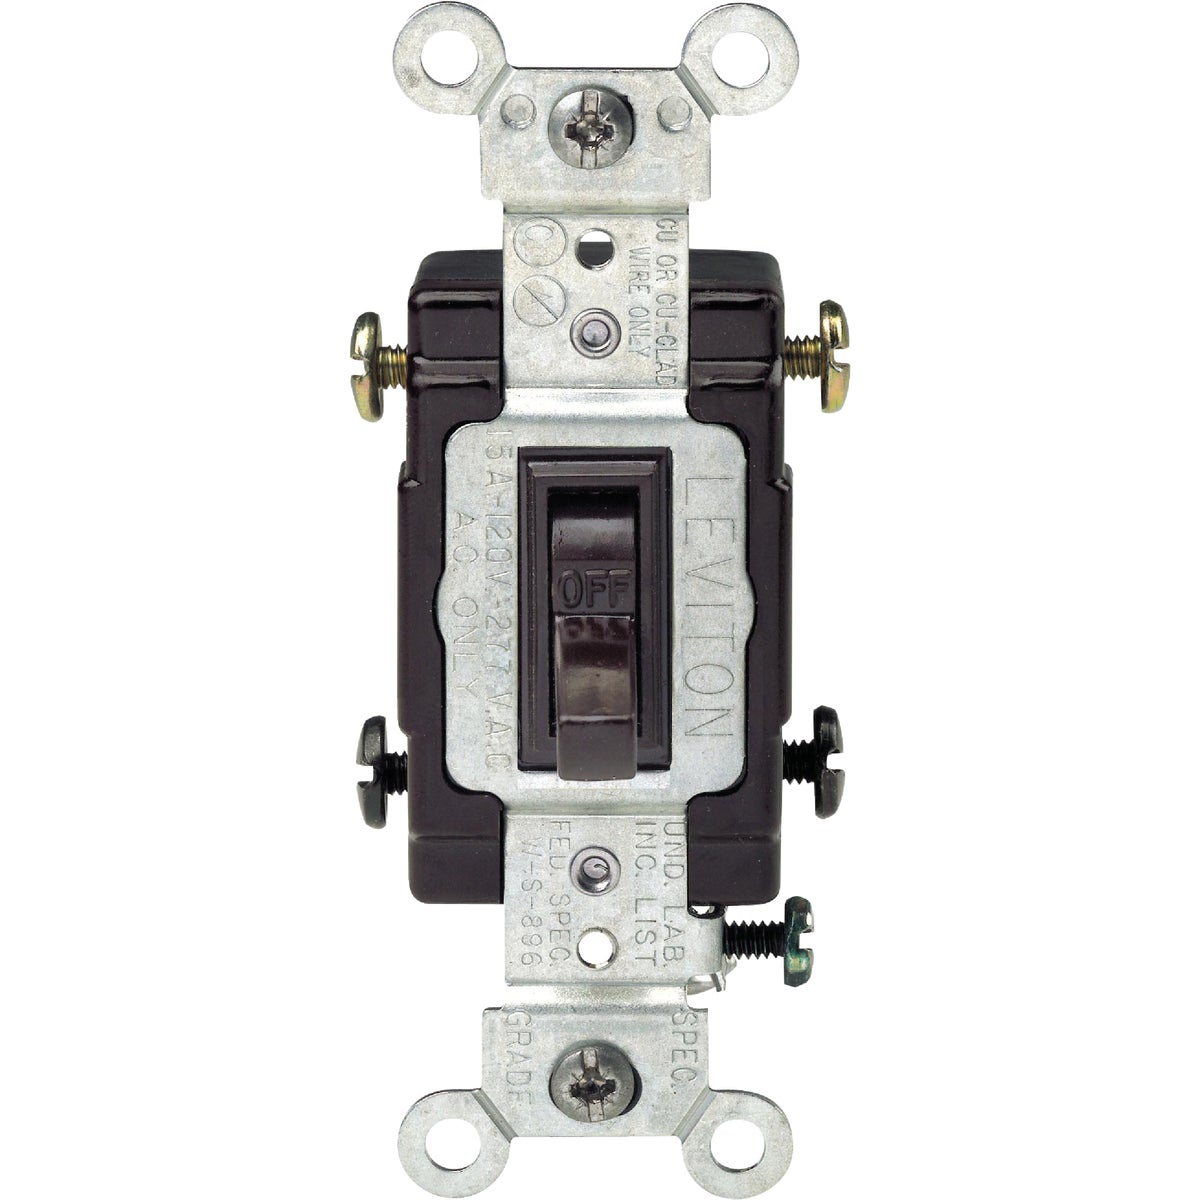 BRN 2-POLE GRND SWITCH - S15-CS220-2WS by Leviton Mfg Co